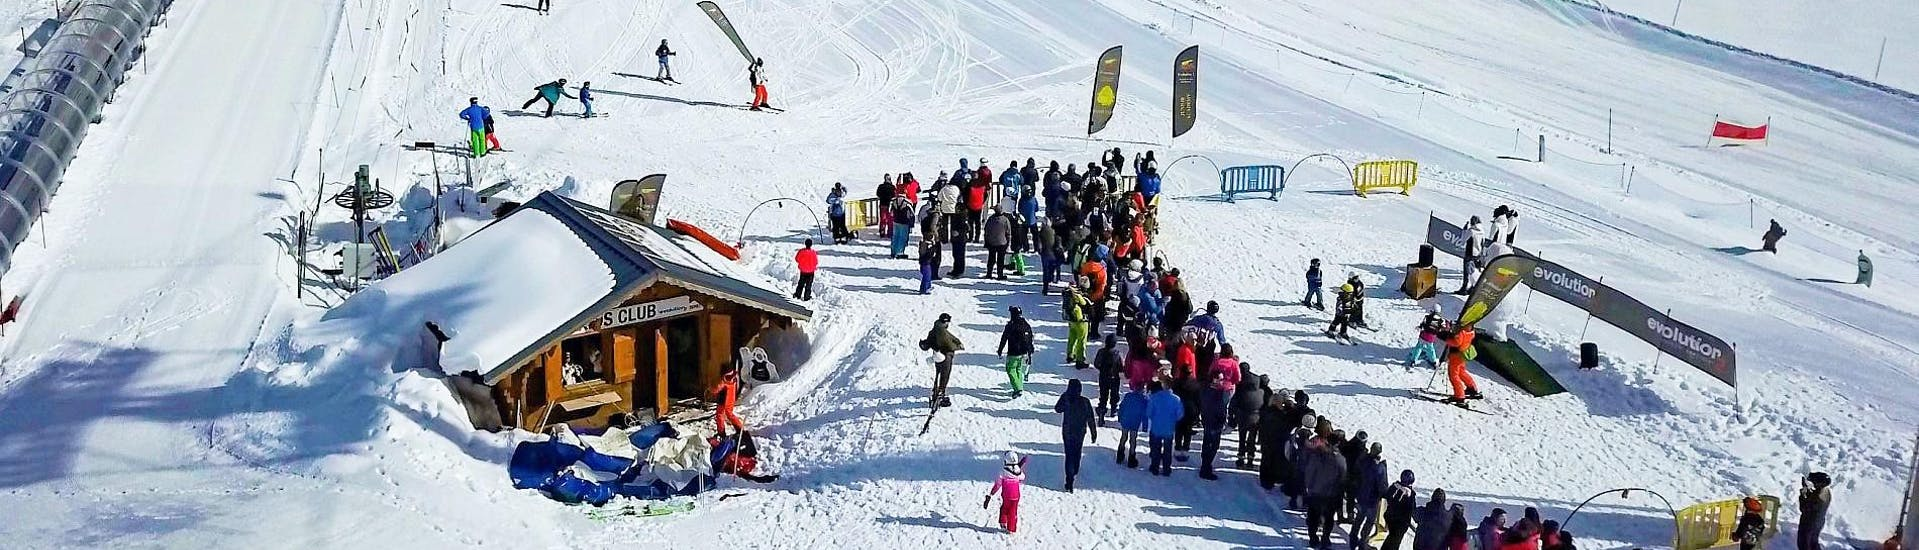 """Young skiers are learning how to ski in the safe environment of the Kids Club of the ski school Evolution 2 Tignes during their Kids Ski Lessons """"Kids Club"""" (3-5 years) - Afternoon."""